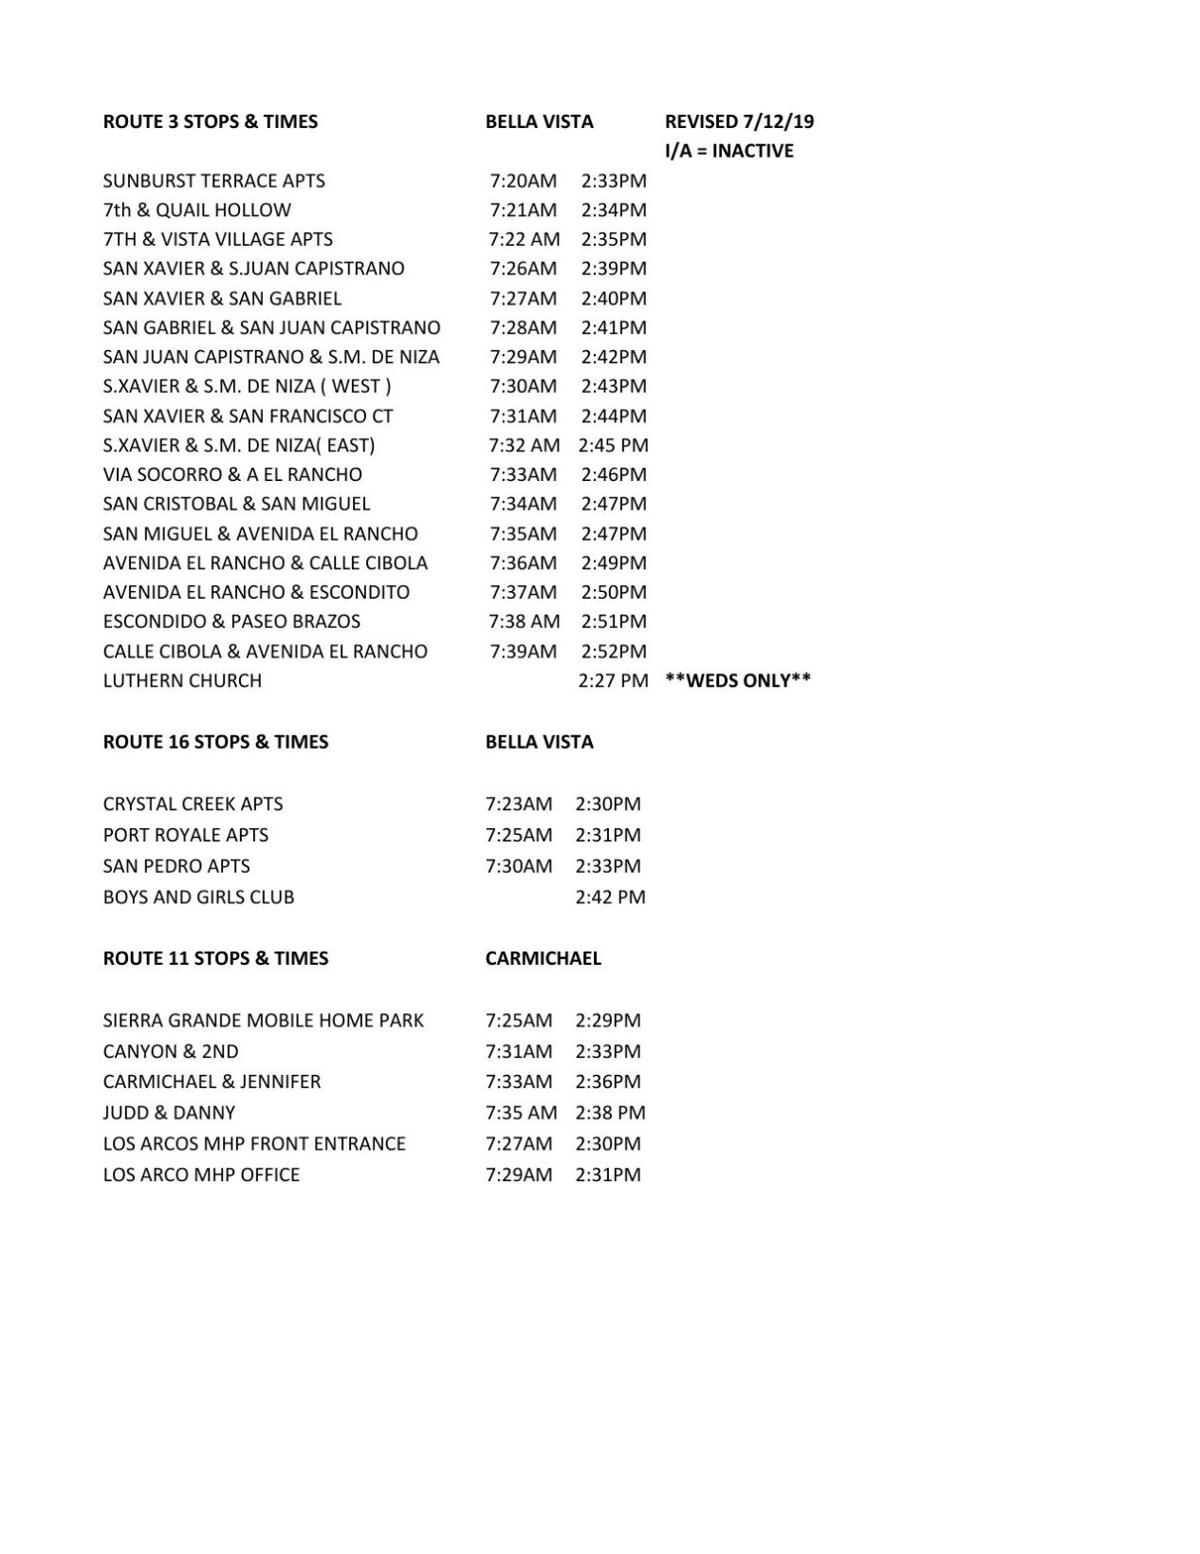 Svusd Calendar.Svusd Bus Schedules Now Available In The Classroom